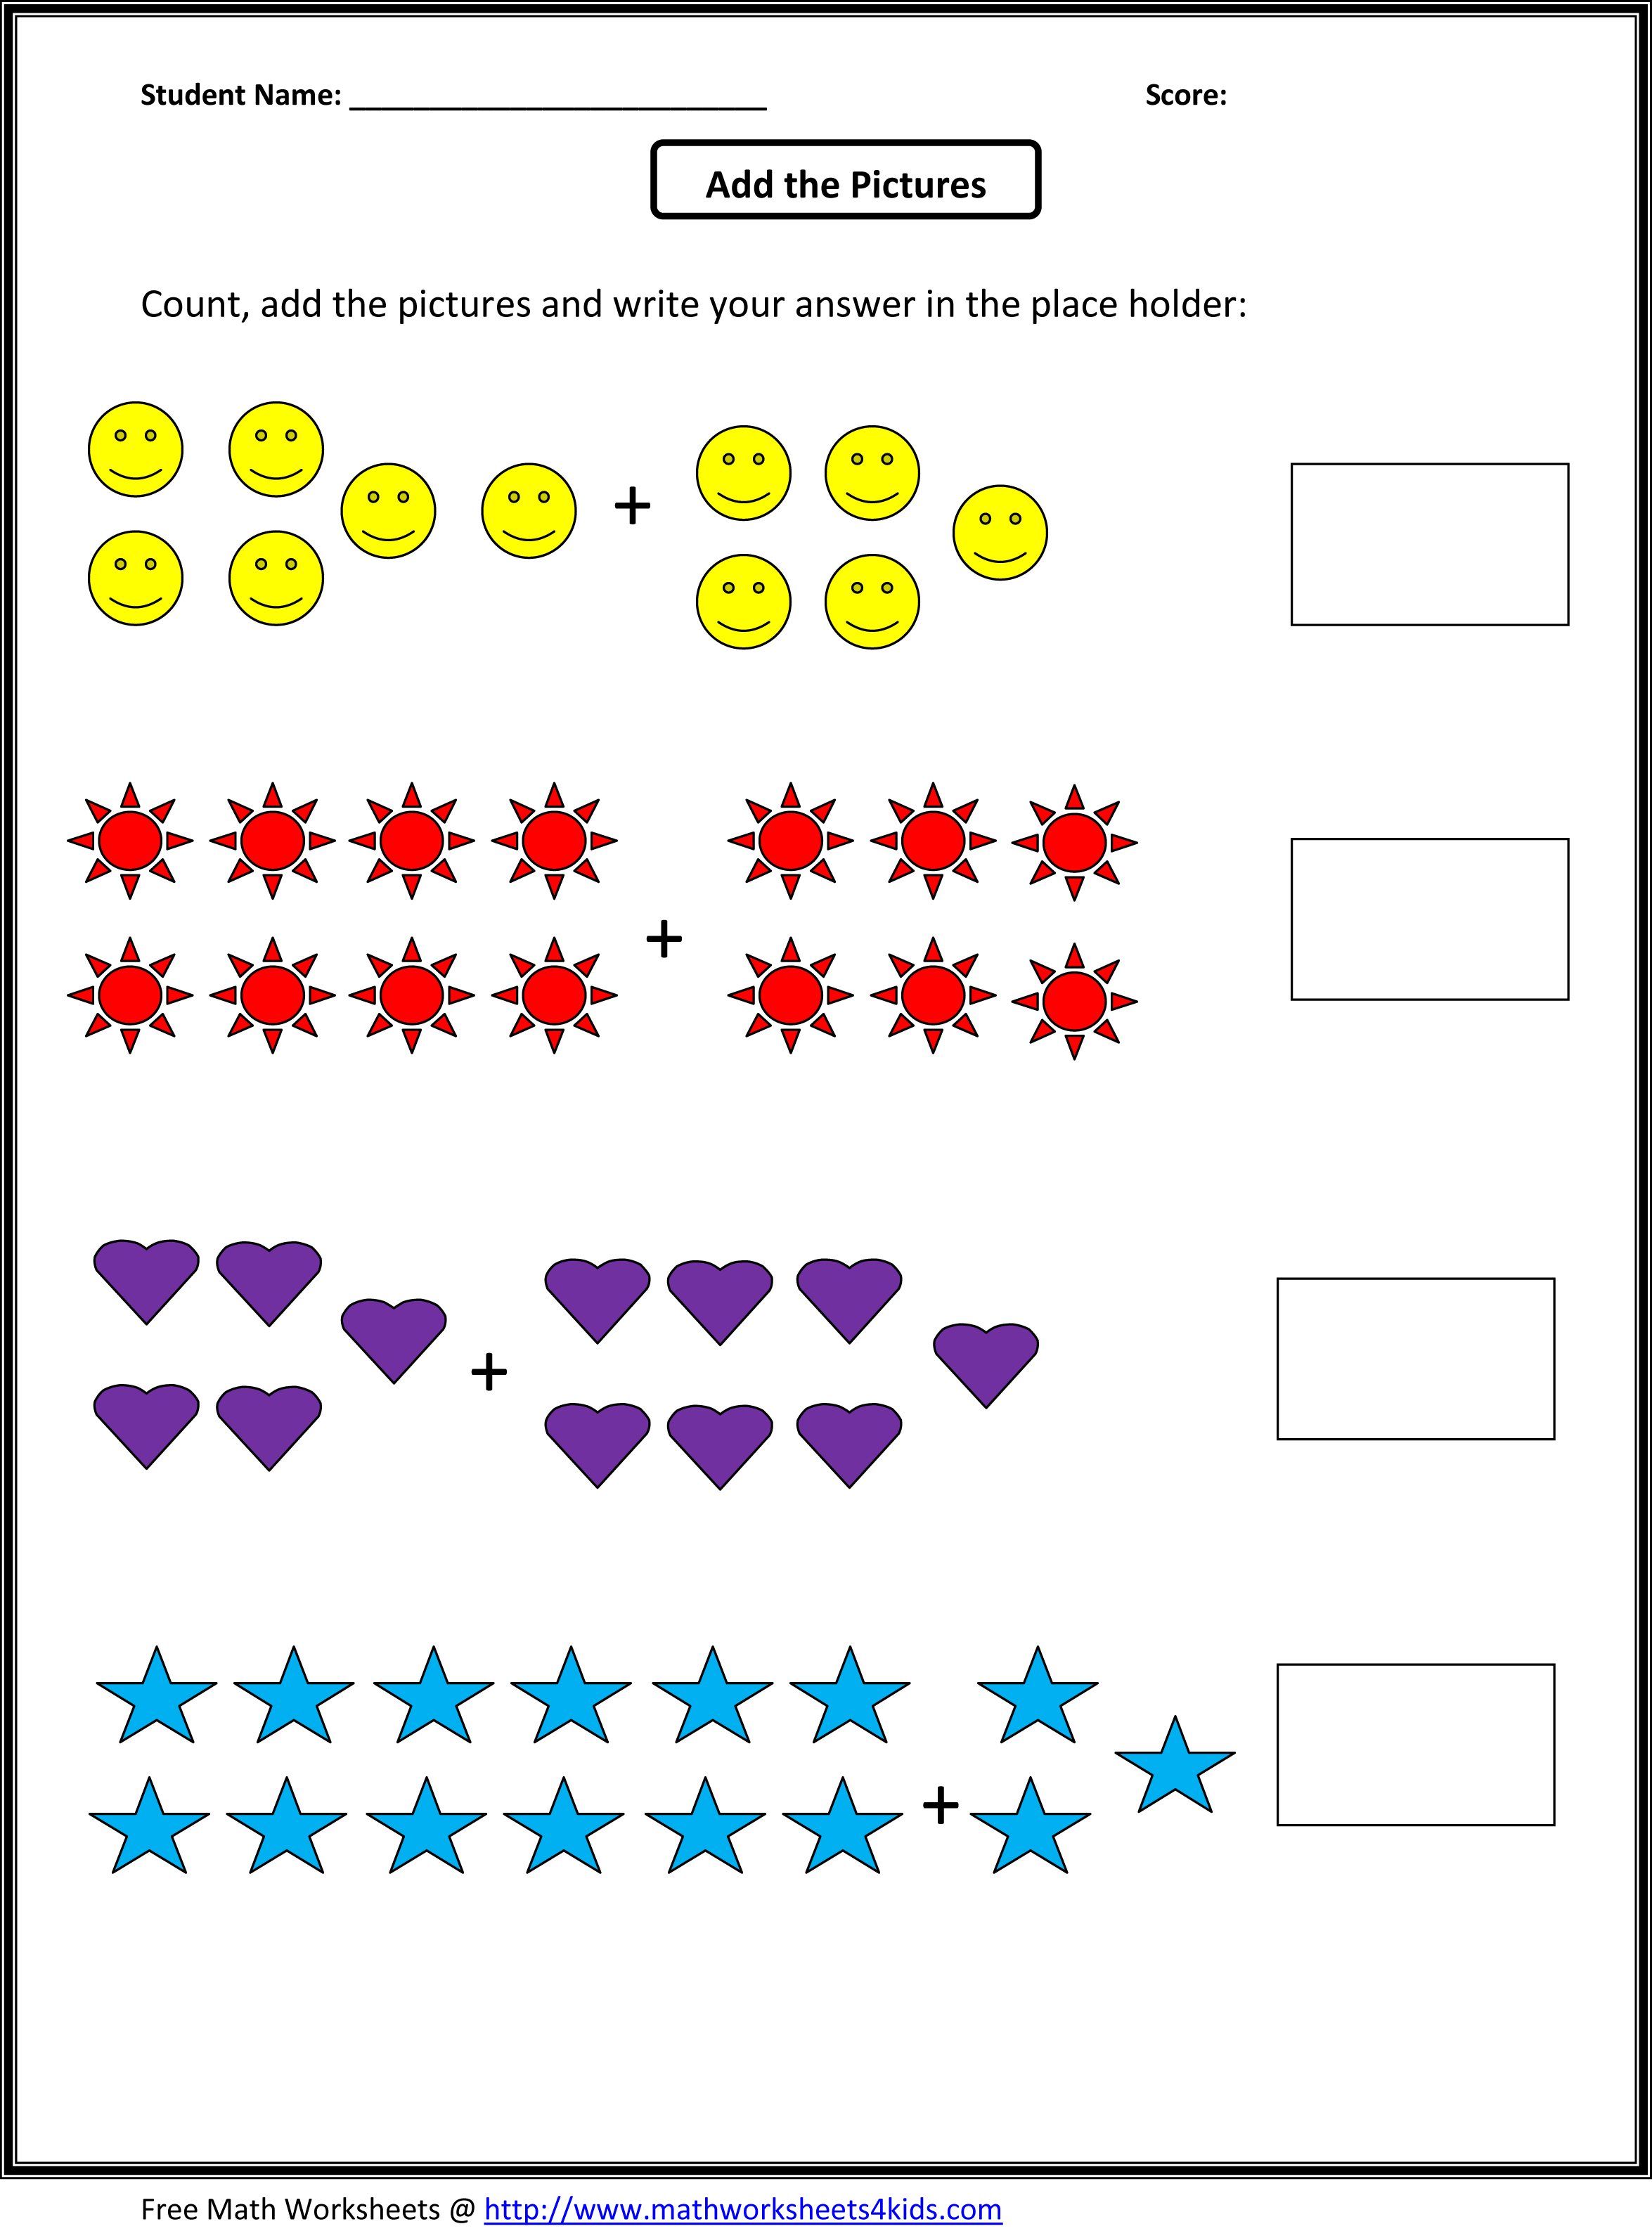 Weirdmailus  Pretty Grade  Maths Worksheet  Reocurent With Gorgeous Math Worksheets For St Grade Free  Reocurent With Beauteous Pronouns Worksheets Middle School Also Hibernating Animals Worksheet In Addition Frog Life Cycle For Kids Worksheet And Digital Time Worksheet As Well As Worksheet For Reading Comprehension Additionally Demonstrative Pronouns Worksheets For Grade  From Reocurentcom With Weirdmailus  Gorgeous Grade  Maths Worksheet  Reocurent With Beauteous Math Worksheets For St Grade Free  Reocurent And Pretty Pronouns Worksheets Middle School Also Hibernating Animals Worksheet In Addition Frog Life Cycle For Kids Worksheet From Reocurentcom